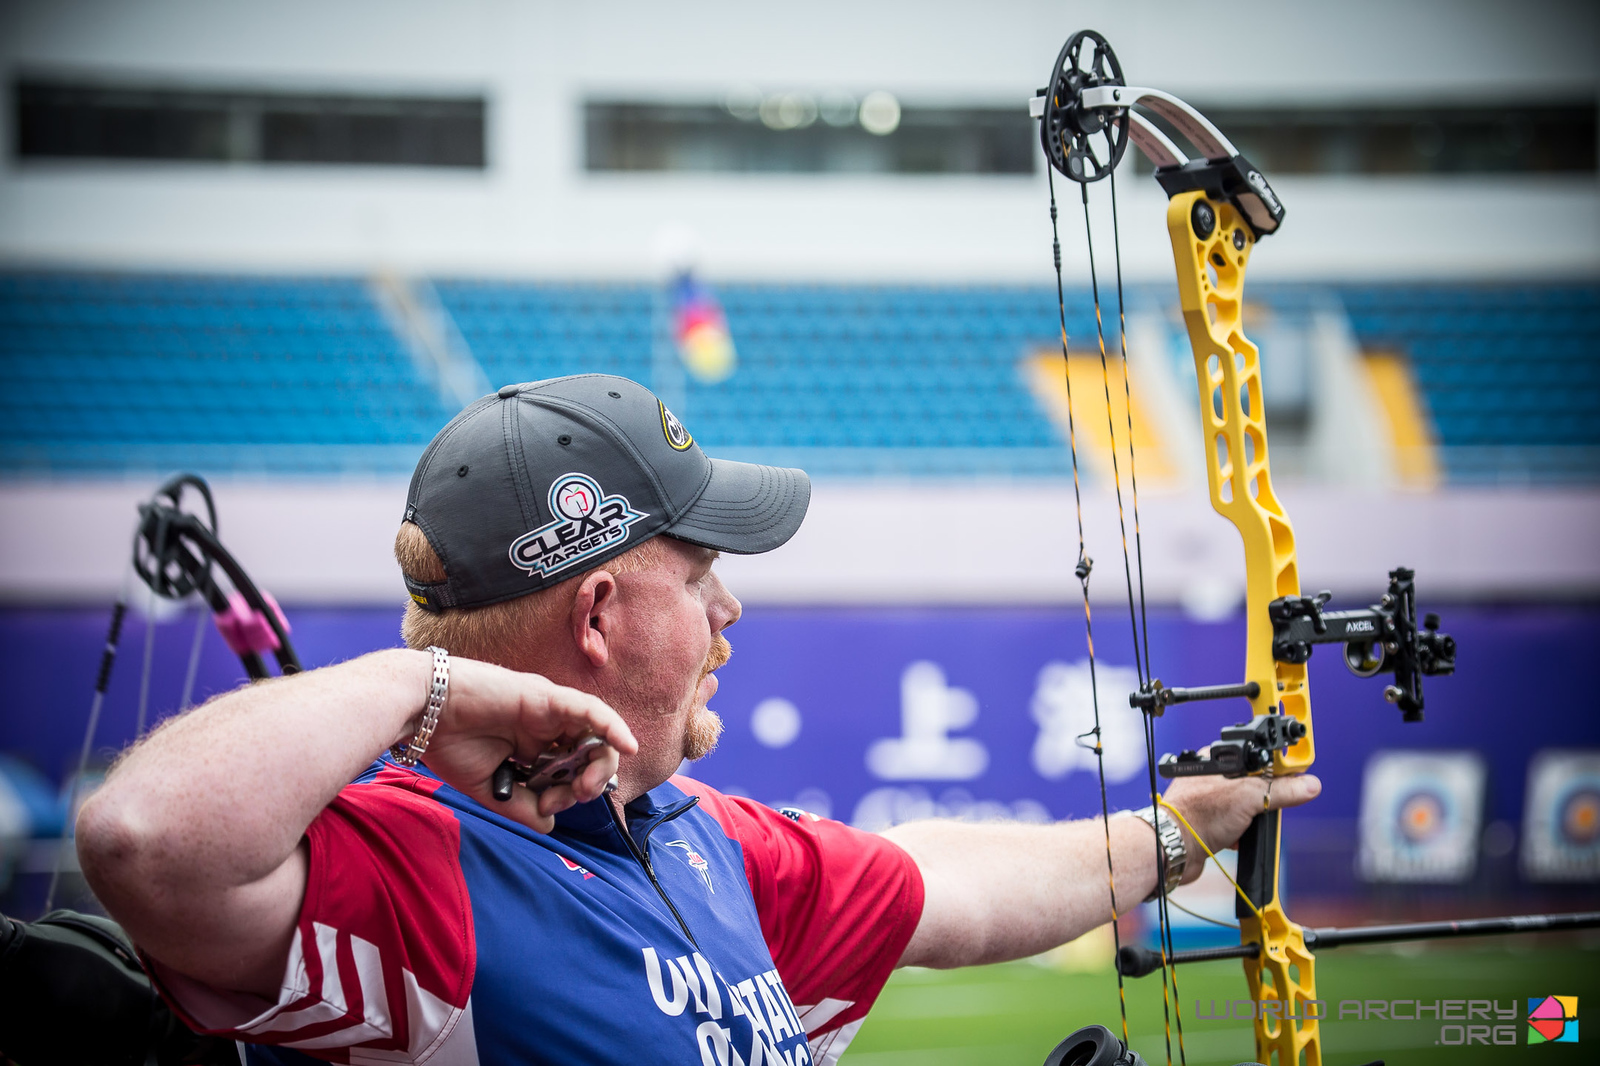 Matt Sullivan took the compound men's pole with a 712. Photo: World Archery